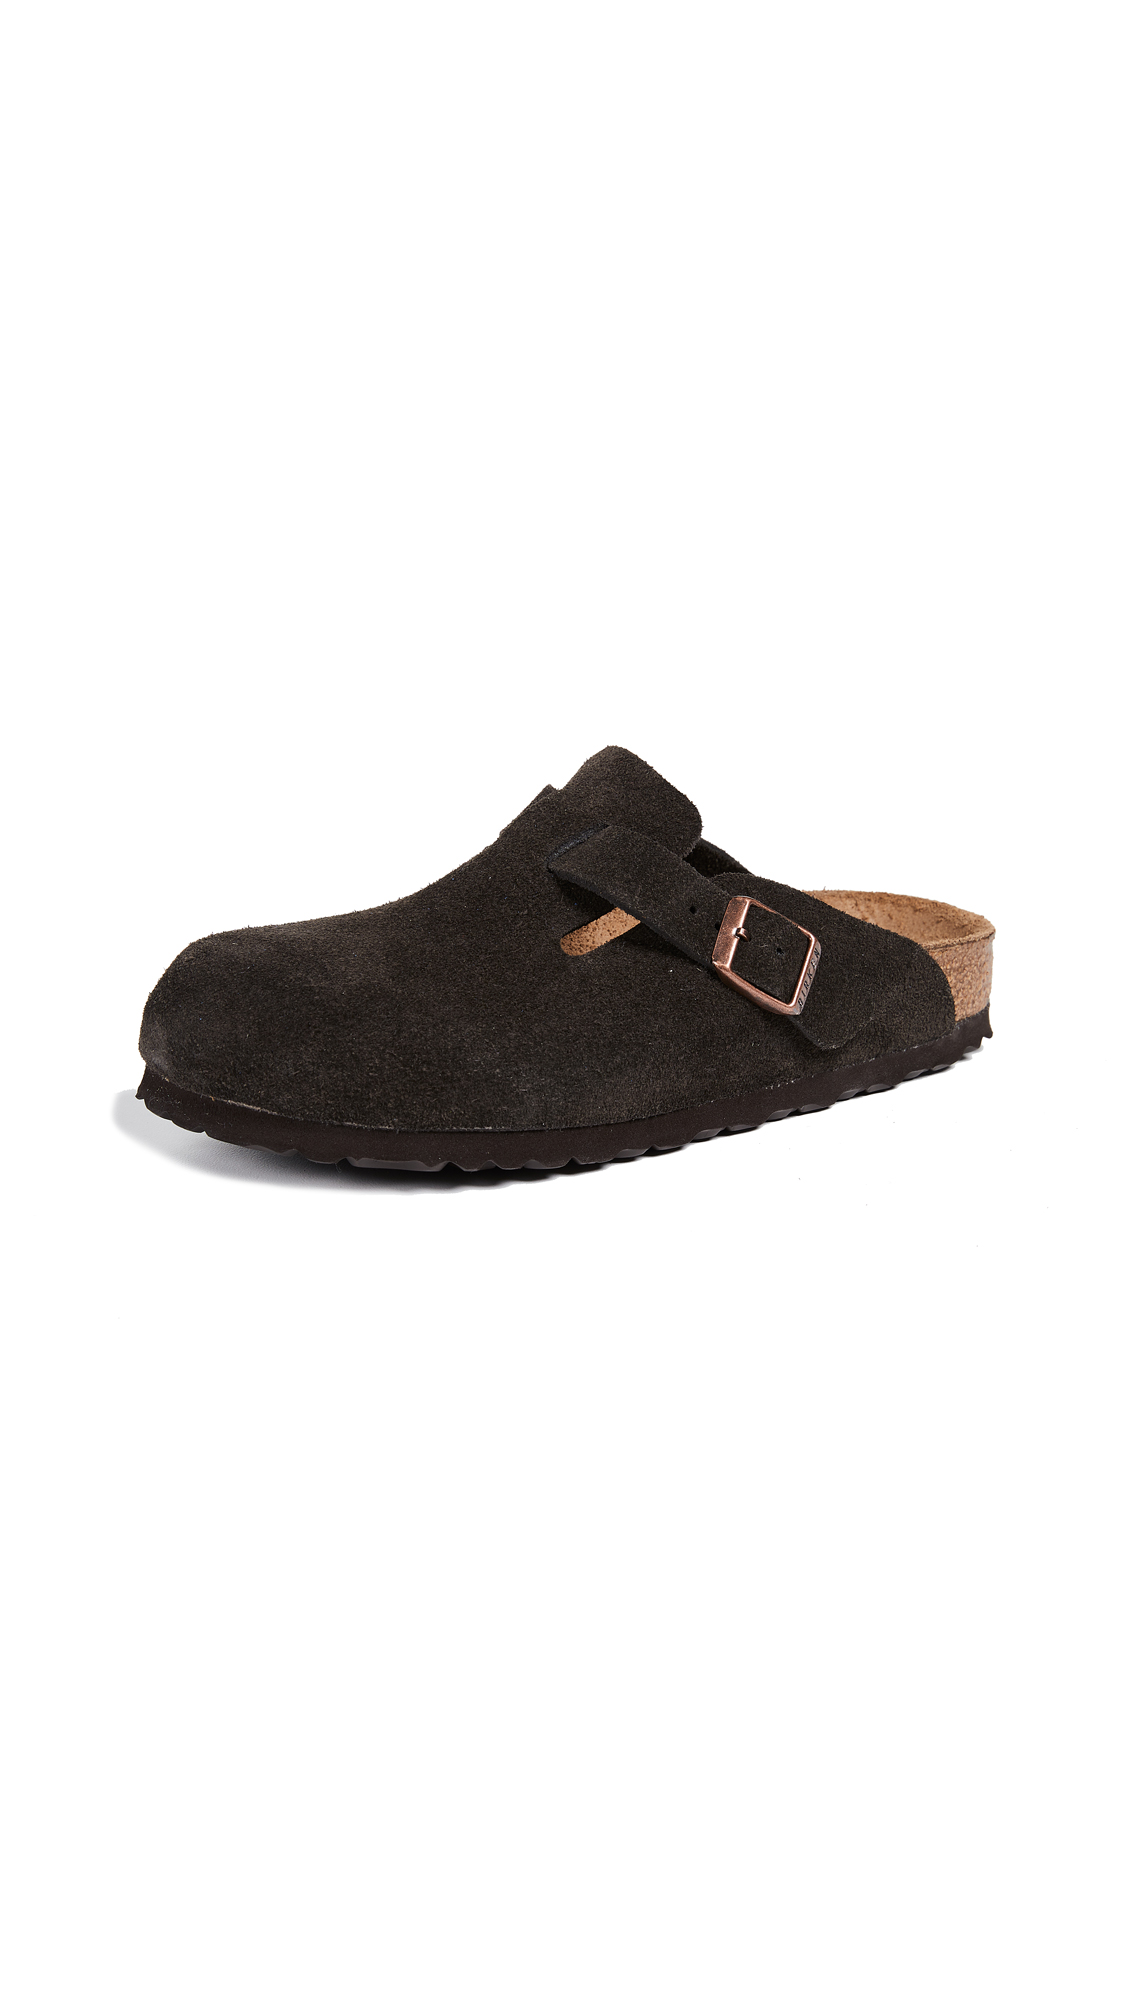 Birkenstock Boston SFB Clogs - Mocha